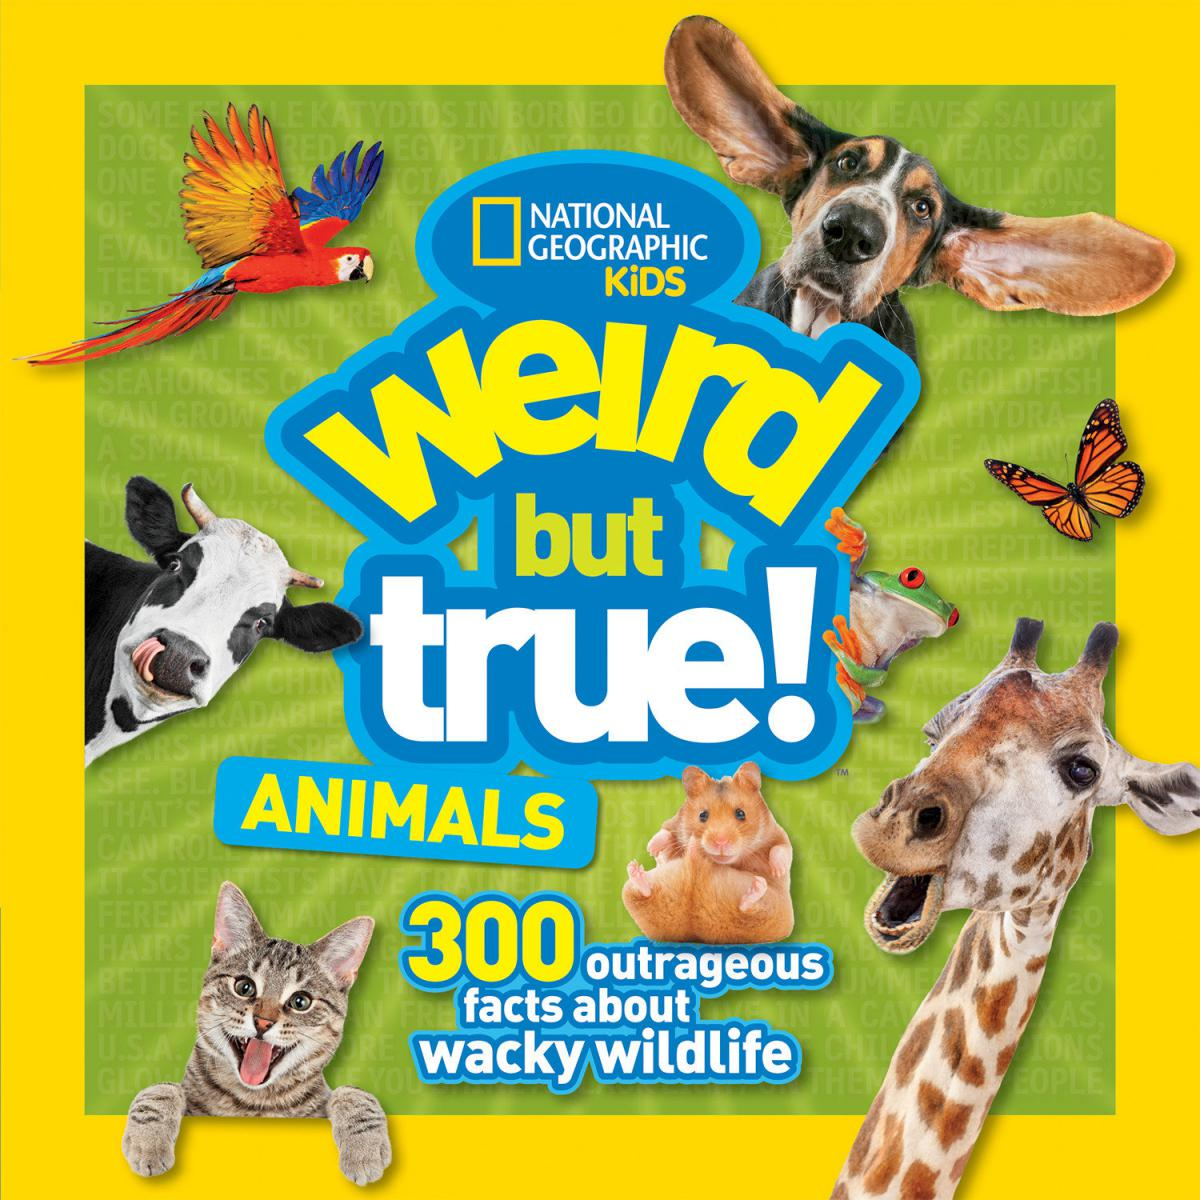 National Geographic Kids: Weird but True! Animals